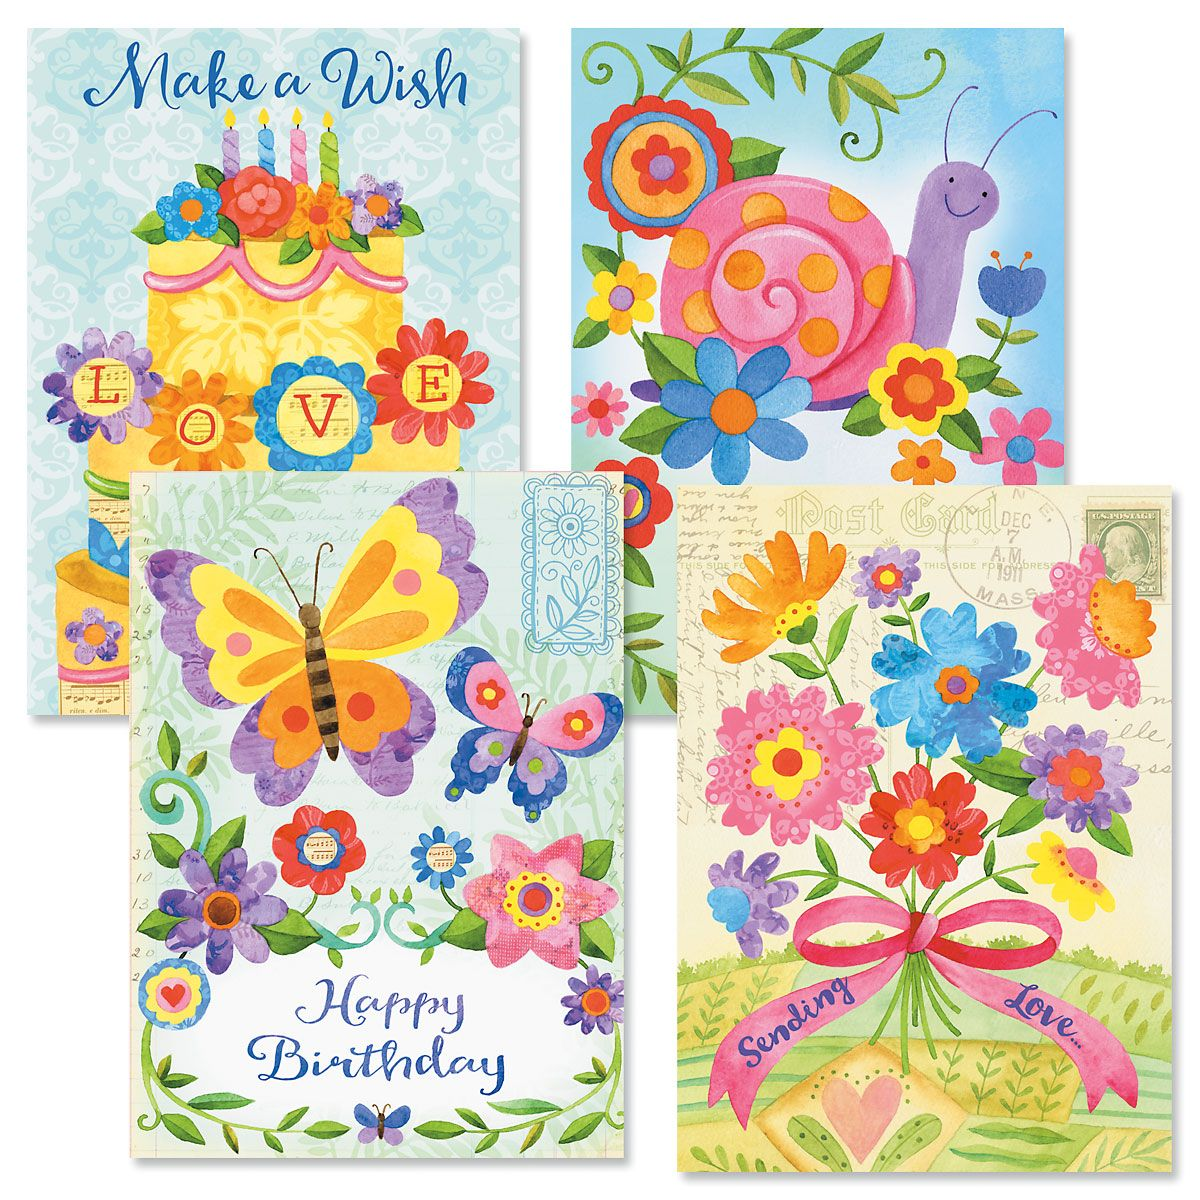 From the Heart Birthday Cards